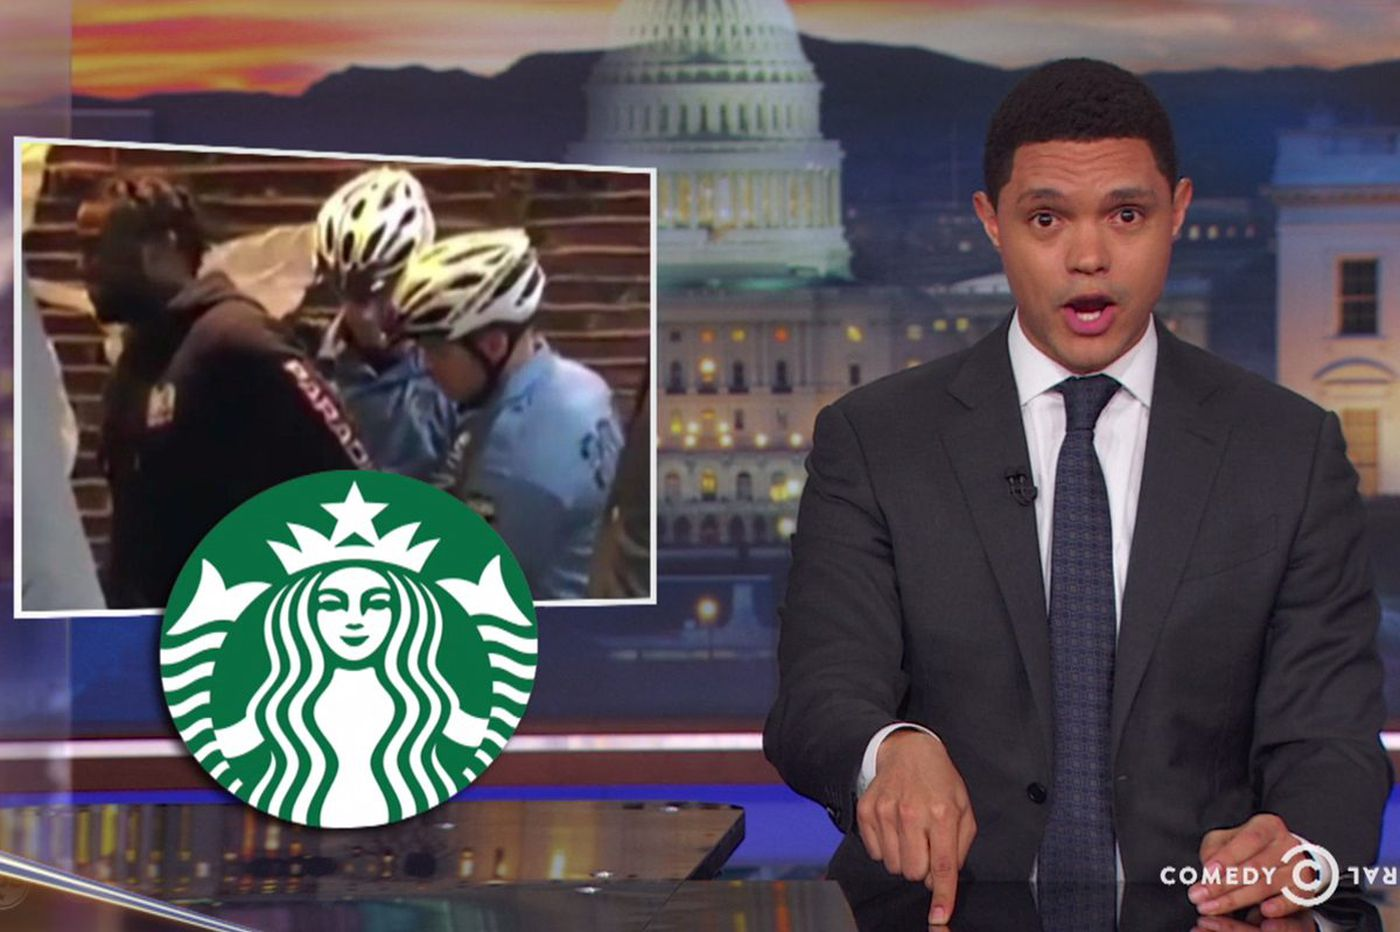 Trevor Noah is the only late-night comedian taking on the Starbucks arrest controversy